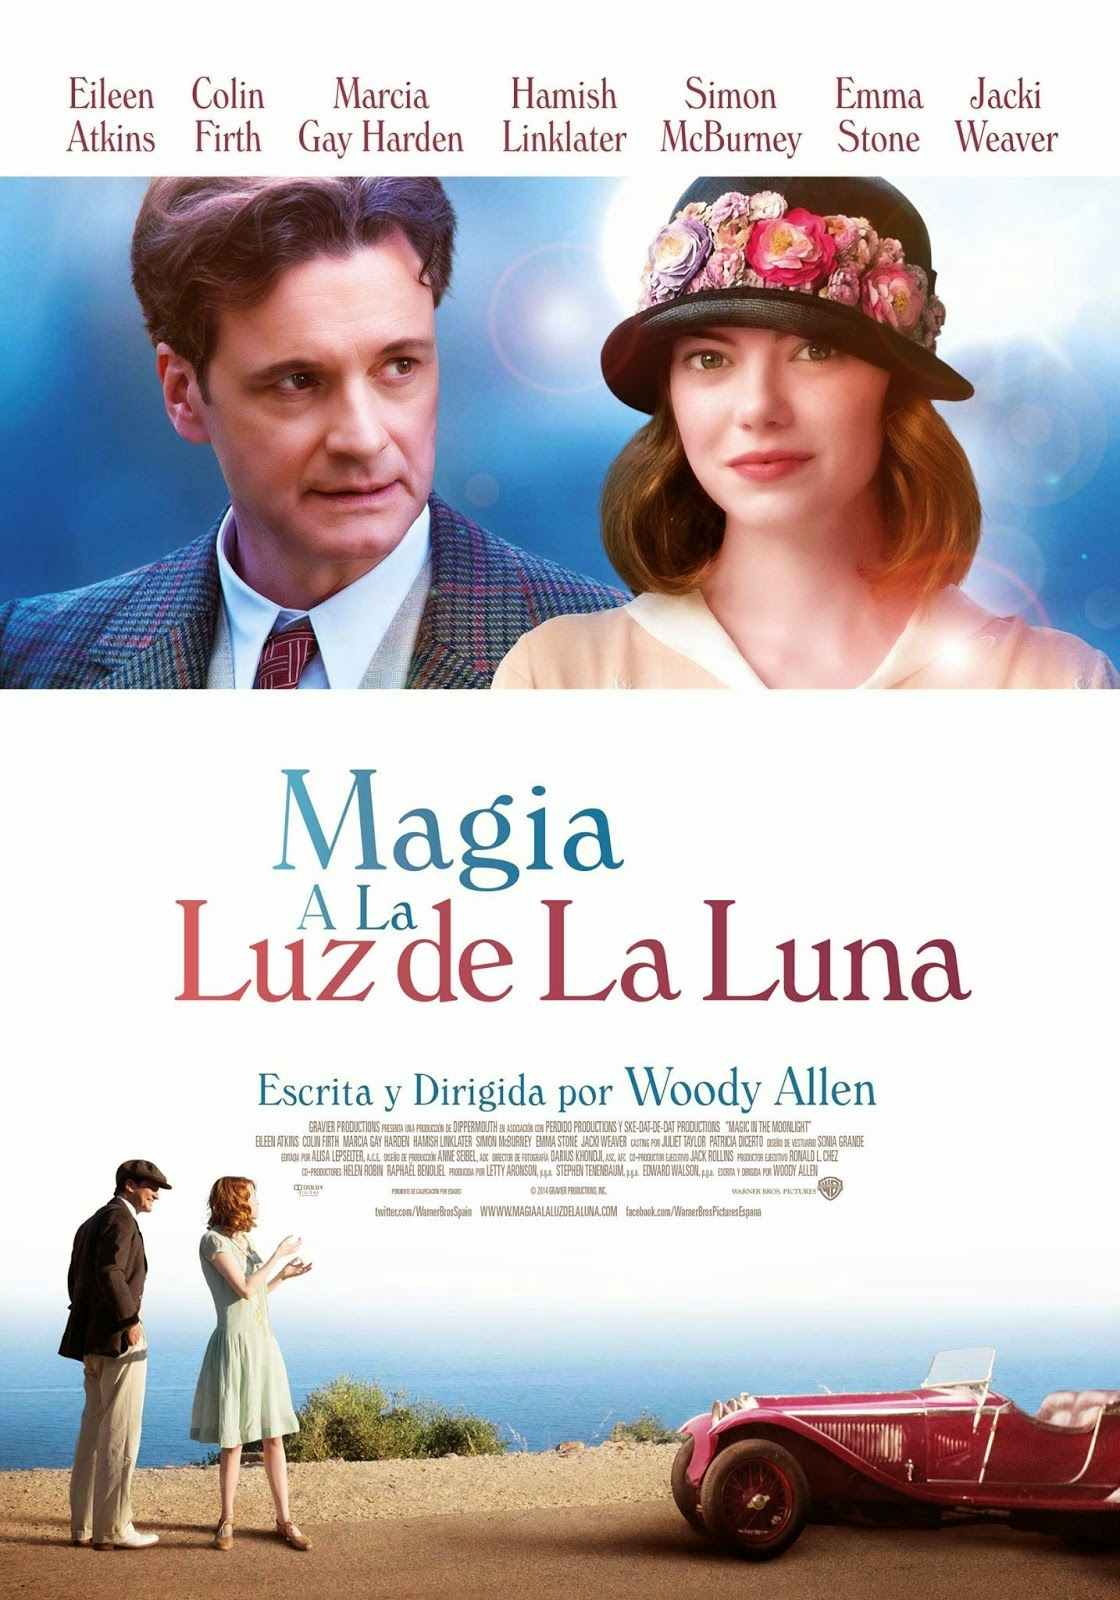 Magia A La Luz De La Luna (Magic In The Moonlight) (2014)